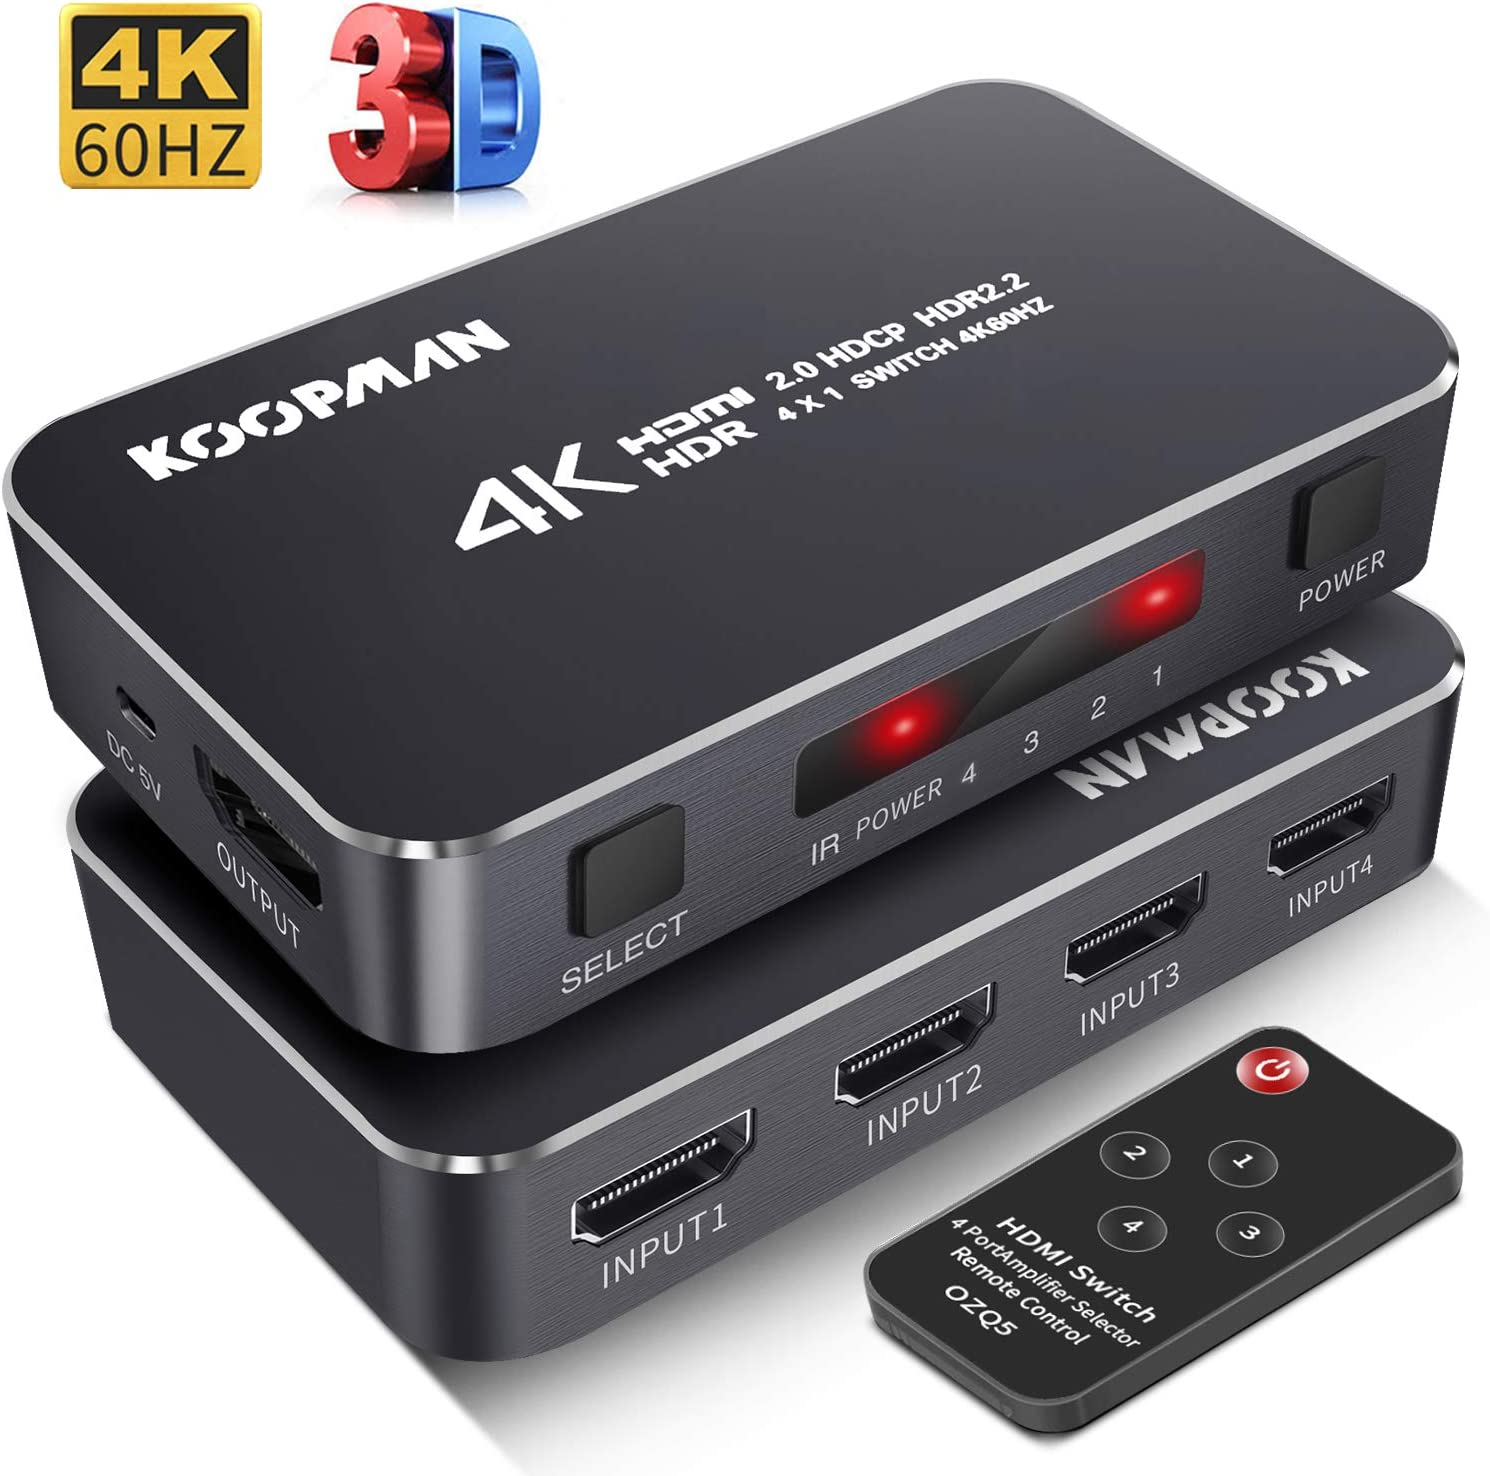 4K HDR HDMI Switch, Koopman 4 Ports 4K 60Hz HDMI 2.0 Switcher Selector with IR Wireless Remote, Supports UltraHD Dolby Vision, High Speed(Max to 18.5Gbps), HDR10, HDCP 2.2 & 3D